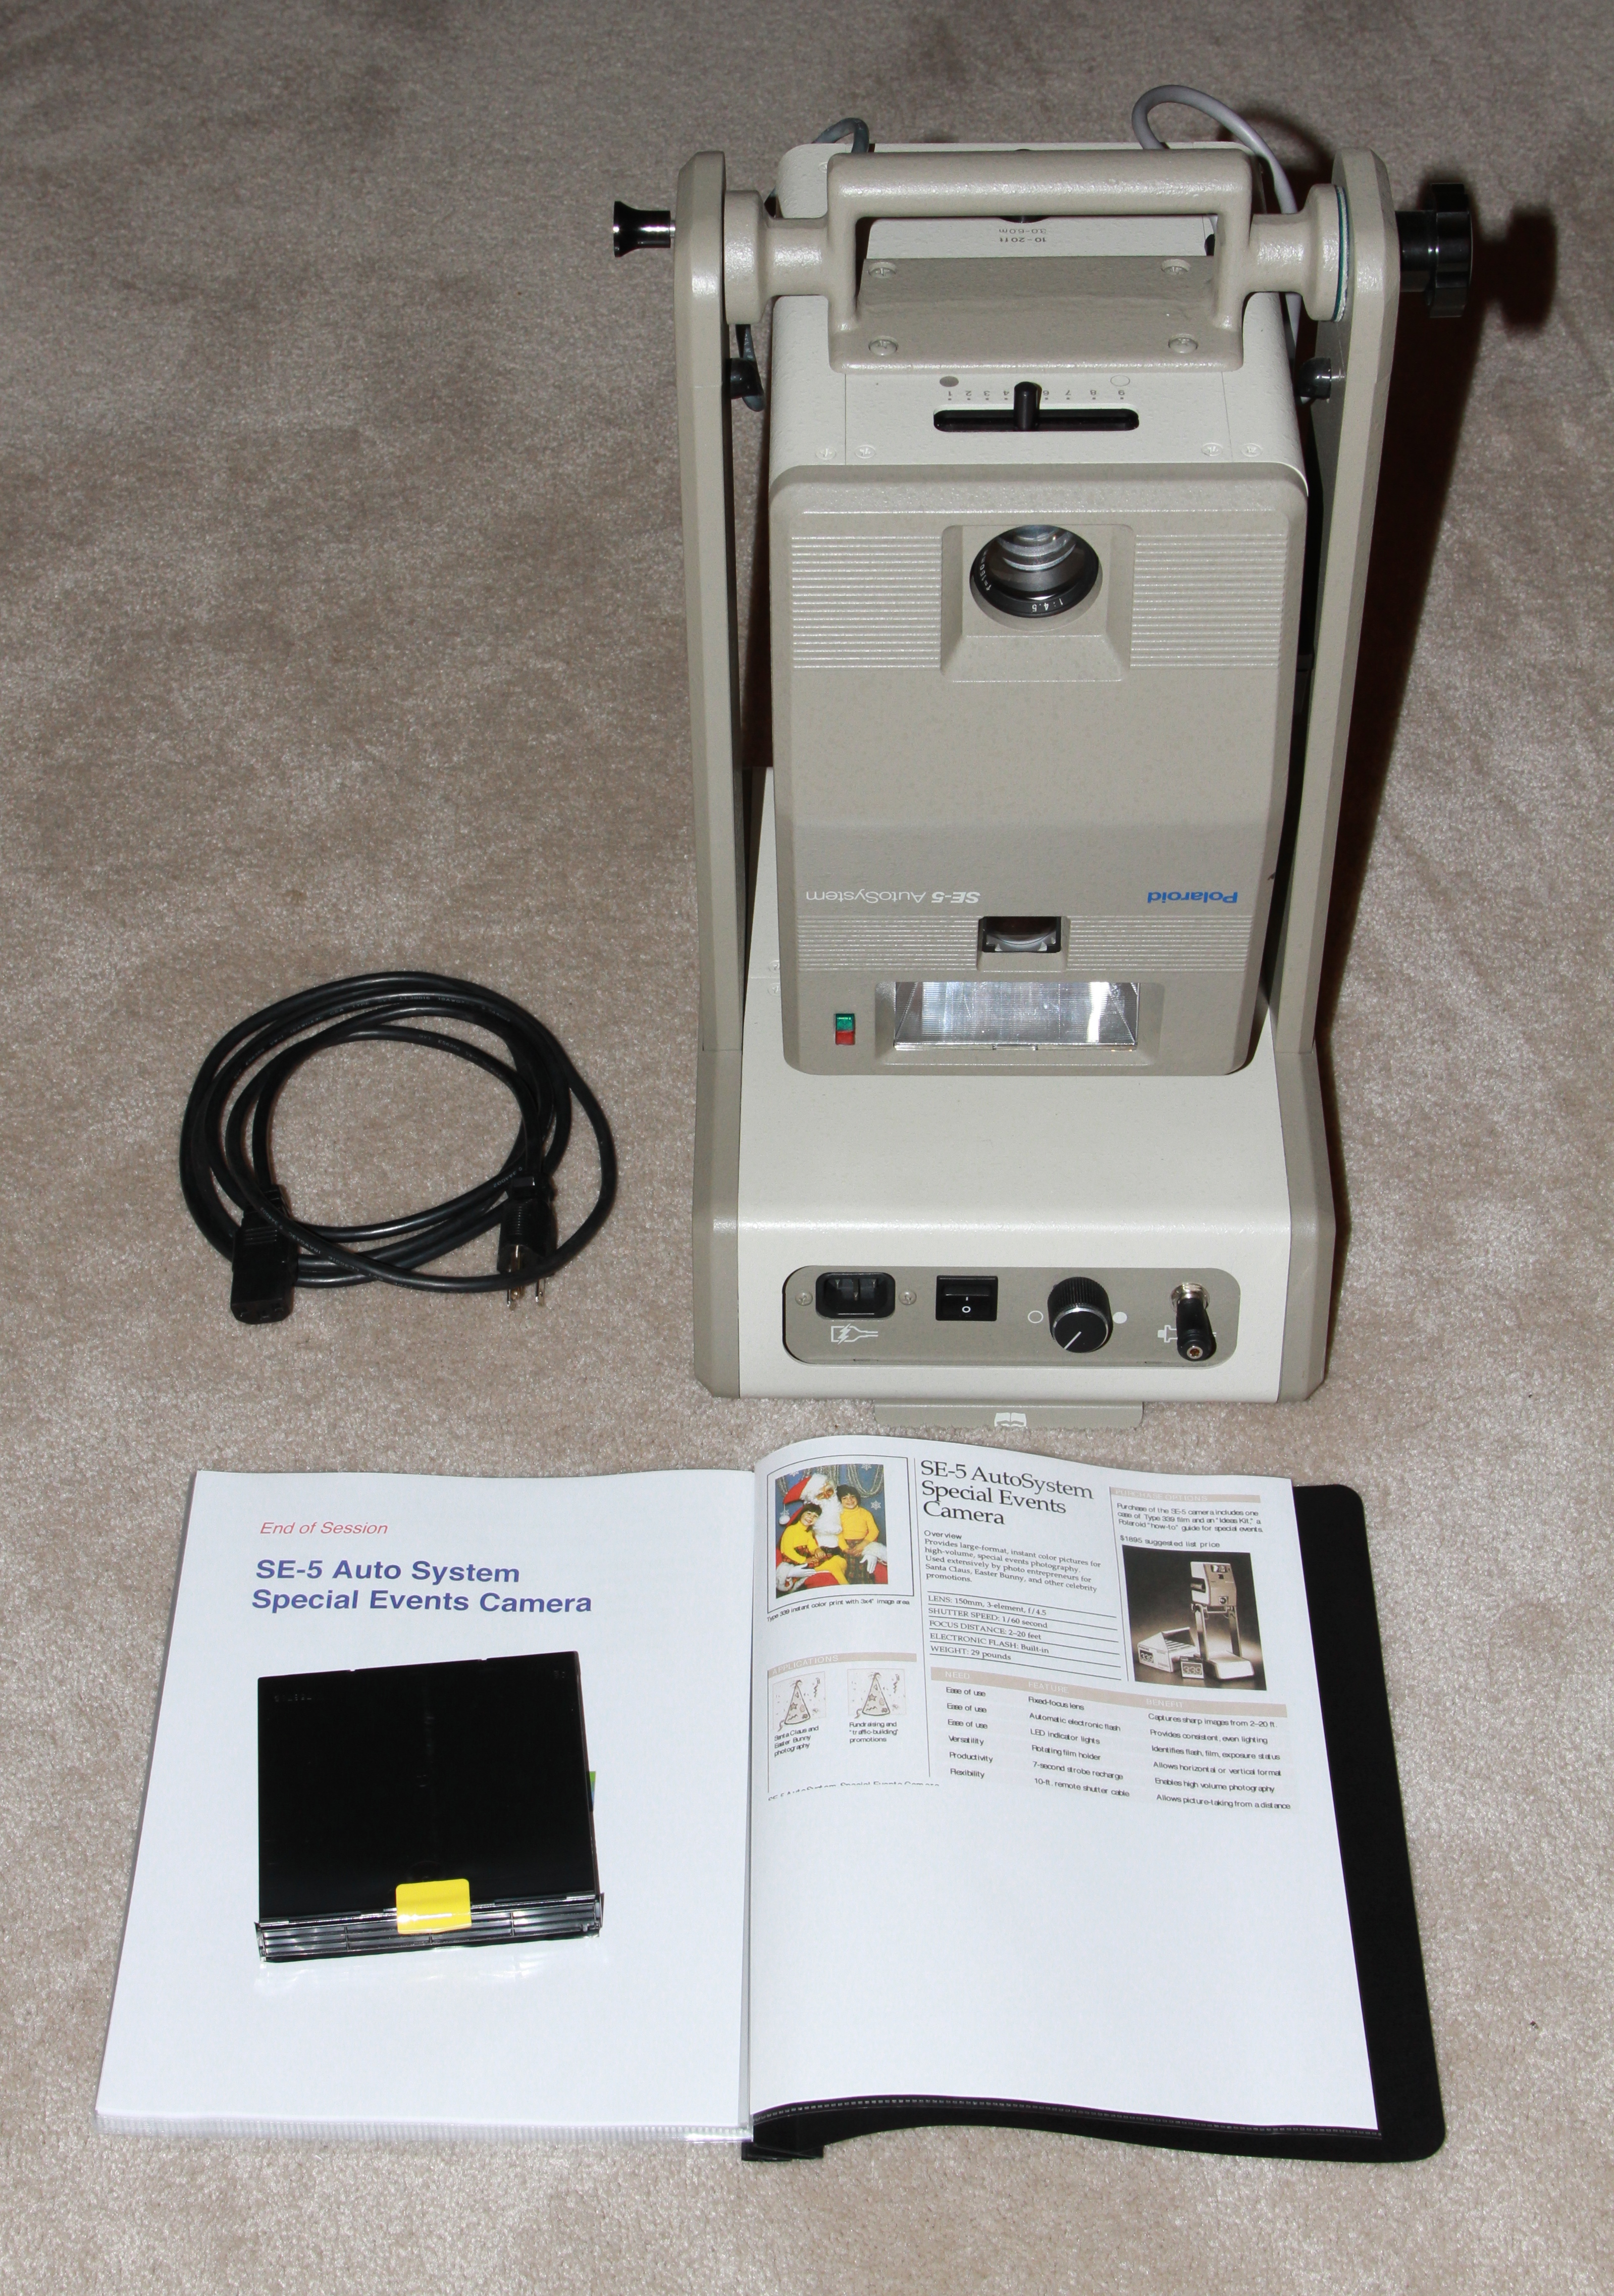 polaroid se-5 special events camera folded 1988